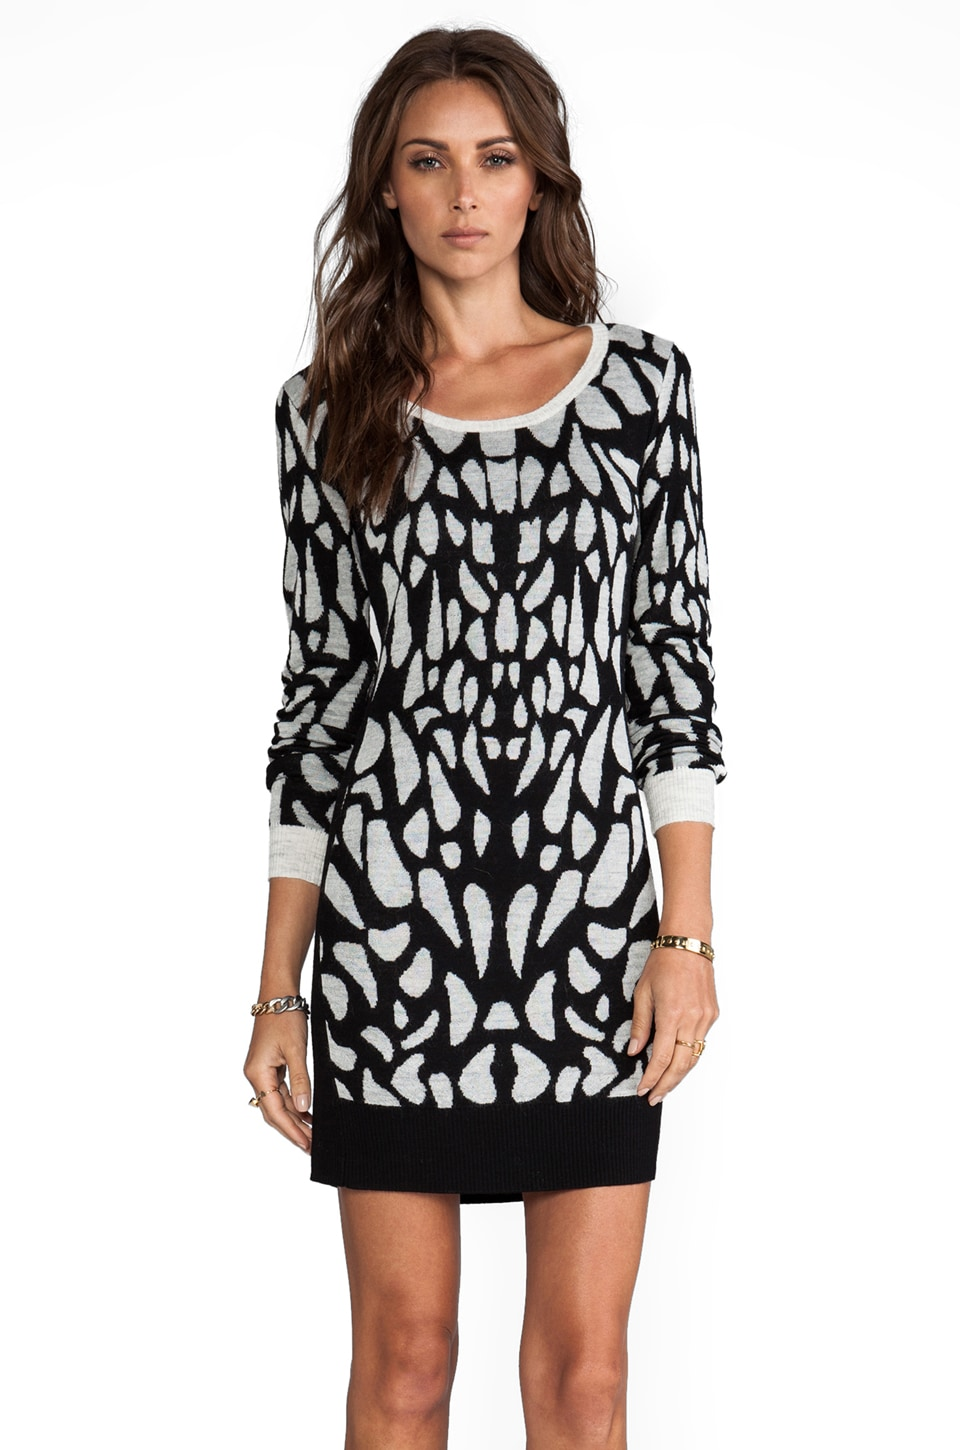 Diane von Furstenberg Fiorella Sweater Dress in Black/White